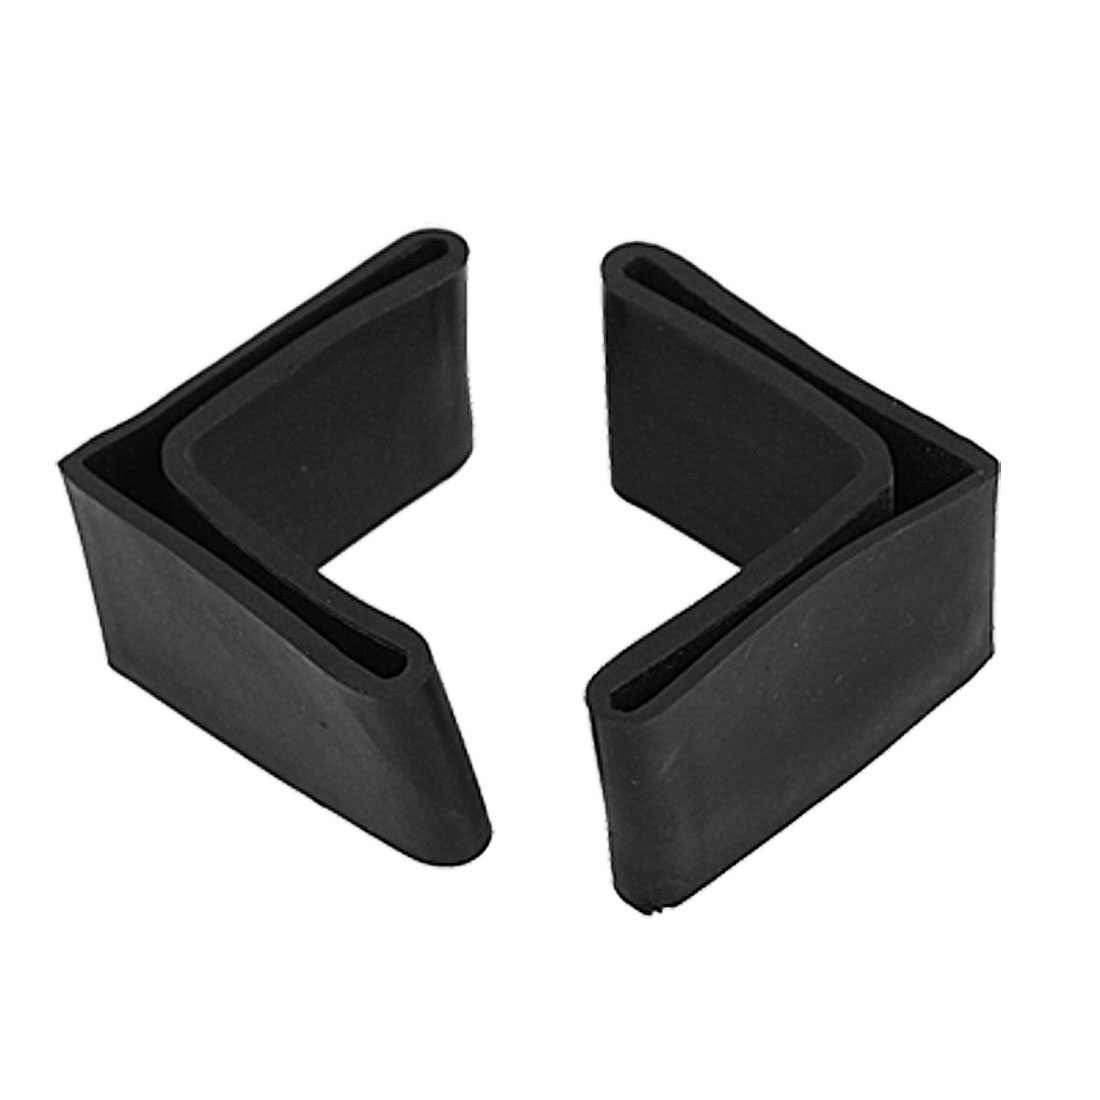 10 Pcs 48mm x 48mm L Shaped Furniture Angle Iron Black Rubber Foot Covers